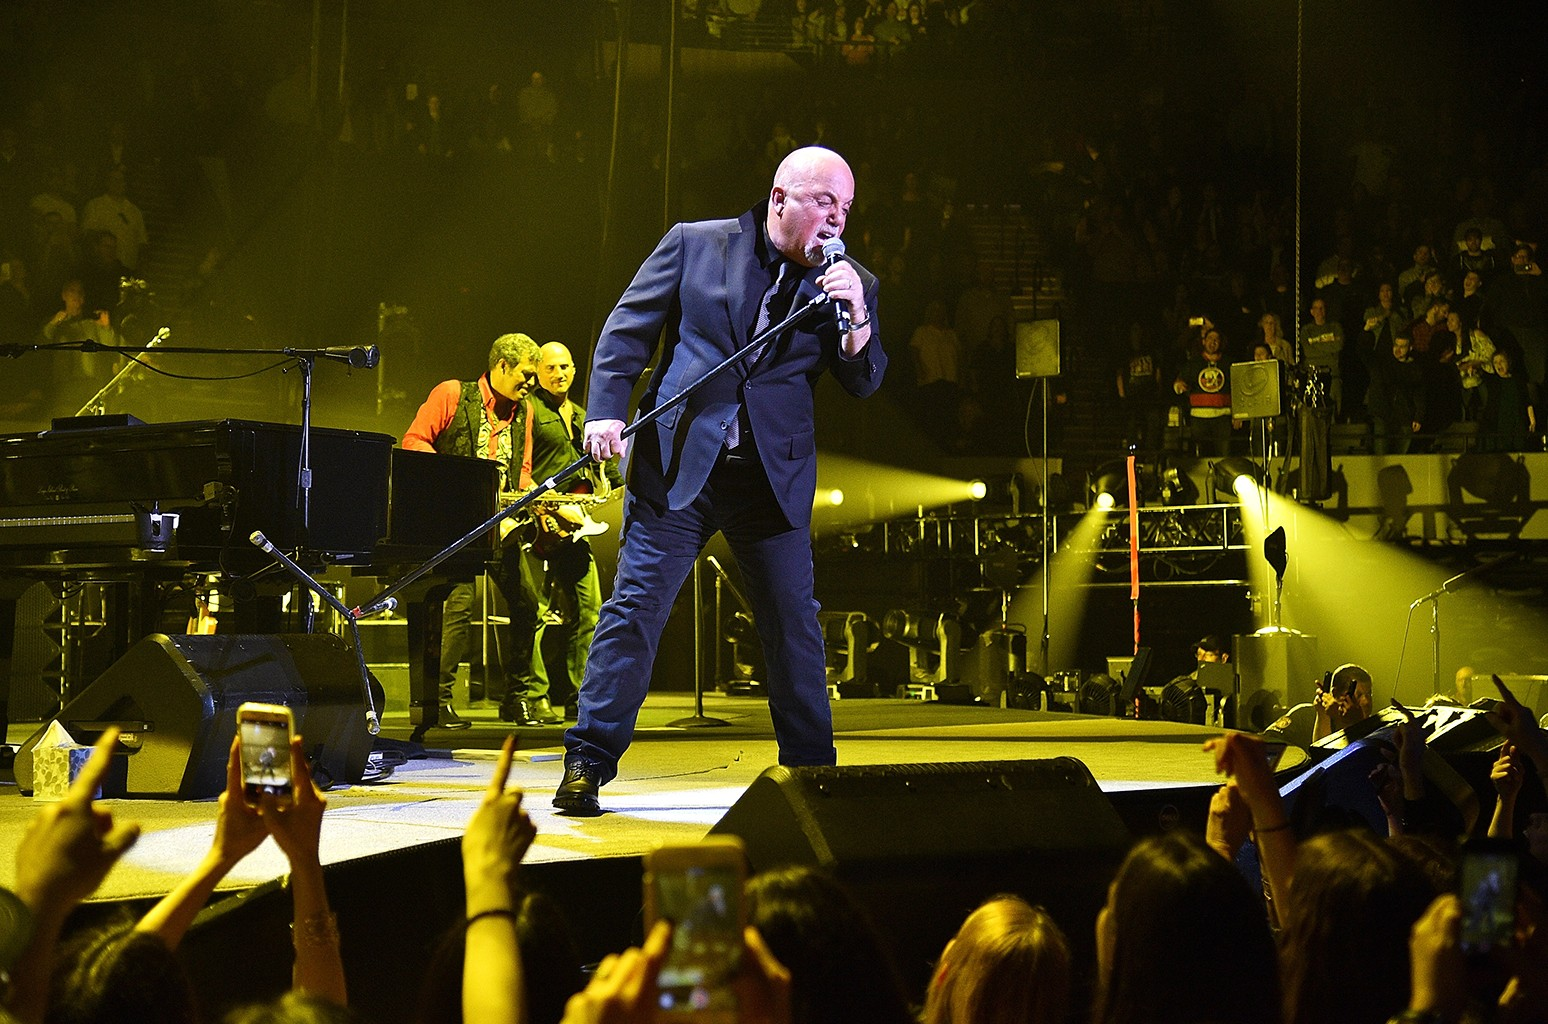 Billy Joel performs at the newly renovated Nassau Coliseum, Long Island on April 5, 2017 in New York City.